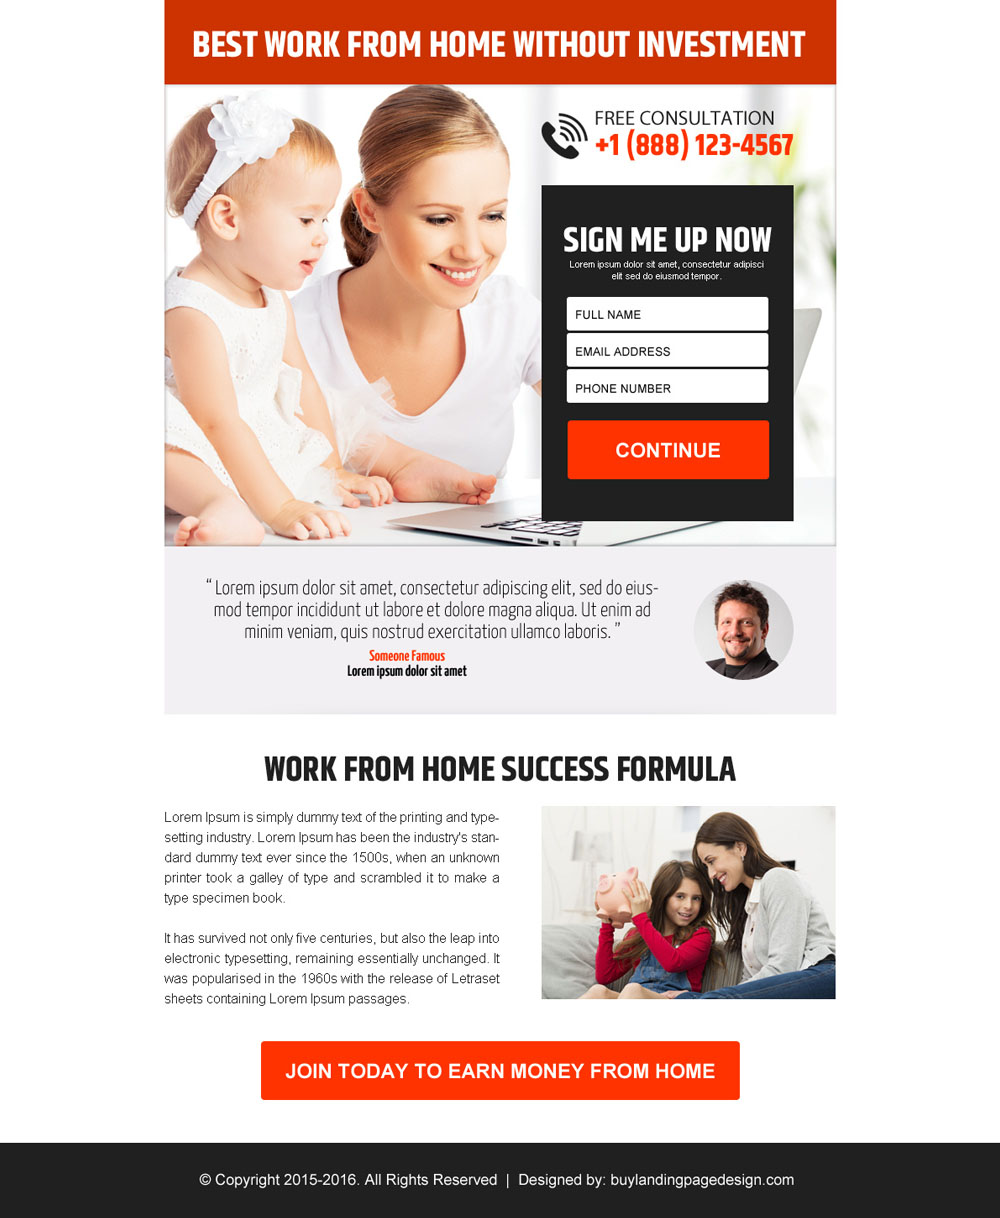 Work From Home Web Design Crowdbuild For 30 Work From Home Without  Investment Sign Up Lead